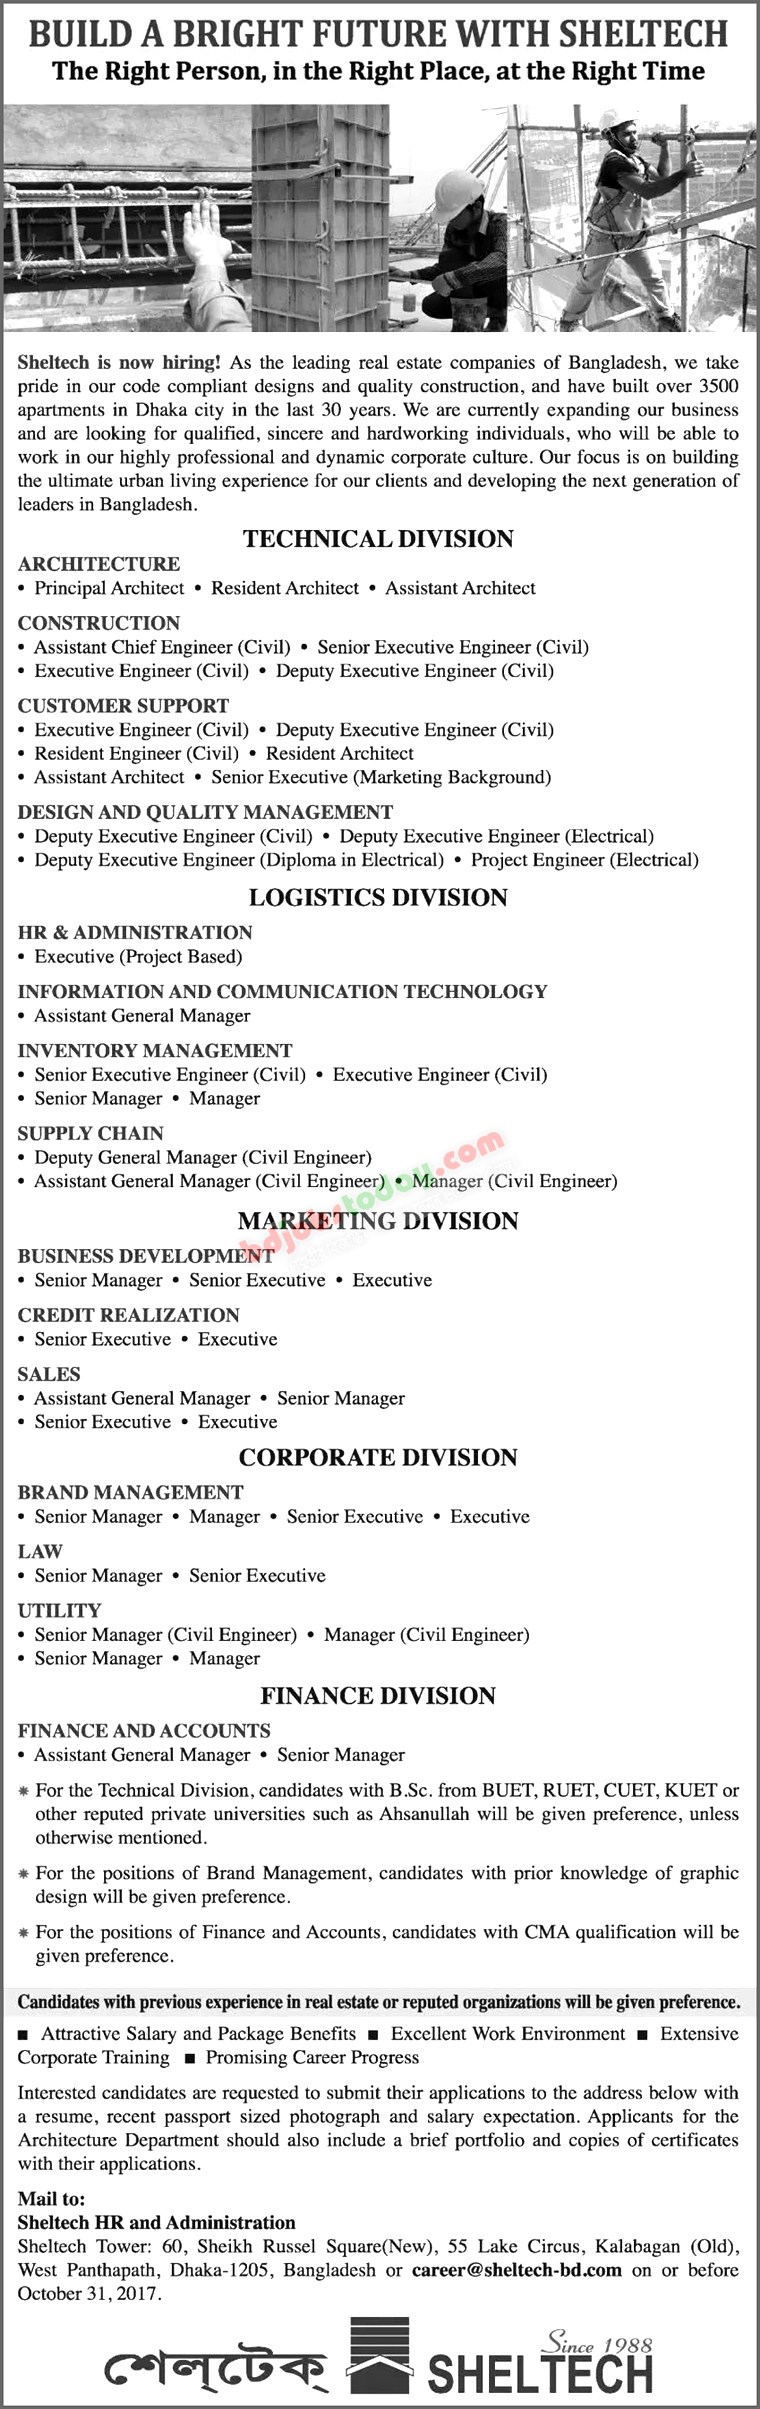 Sheltech Engineering Ltd jobs